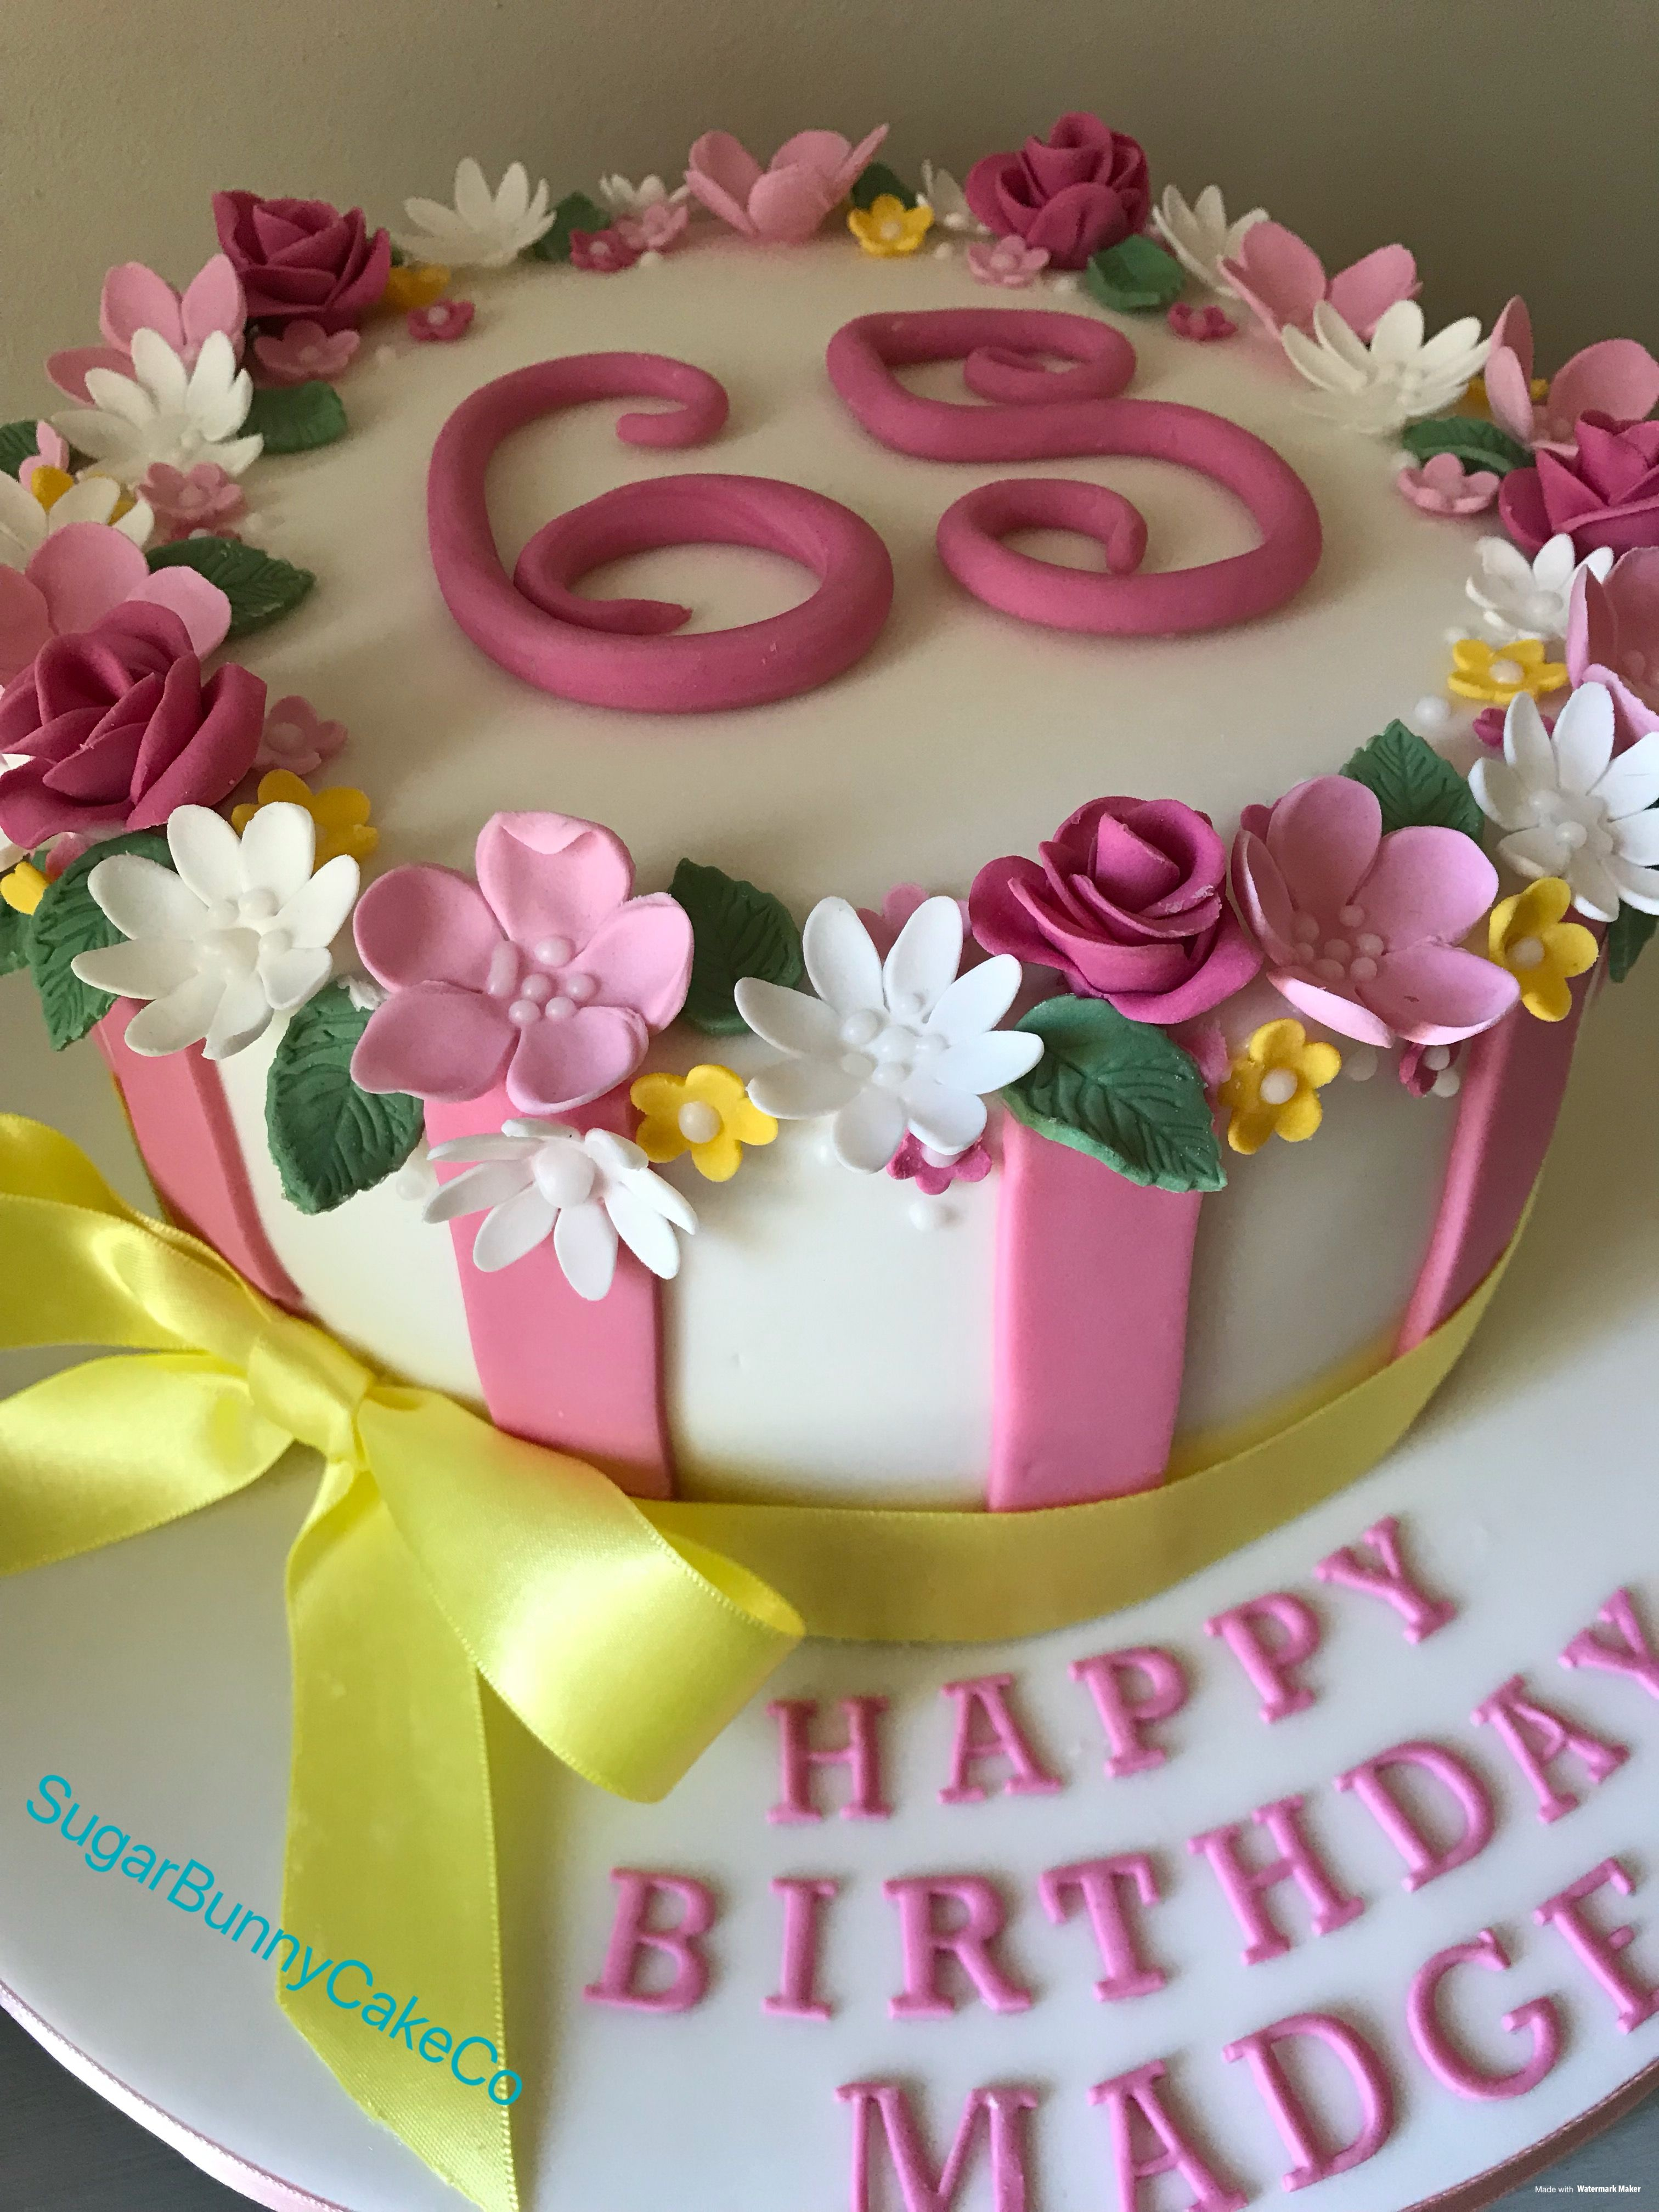 Wondrous 65Th Birthday Flowers Cake With Images 65 Birthday Cake Fancy Funny Birthday Cards Online Inifodamsfinfo